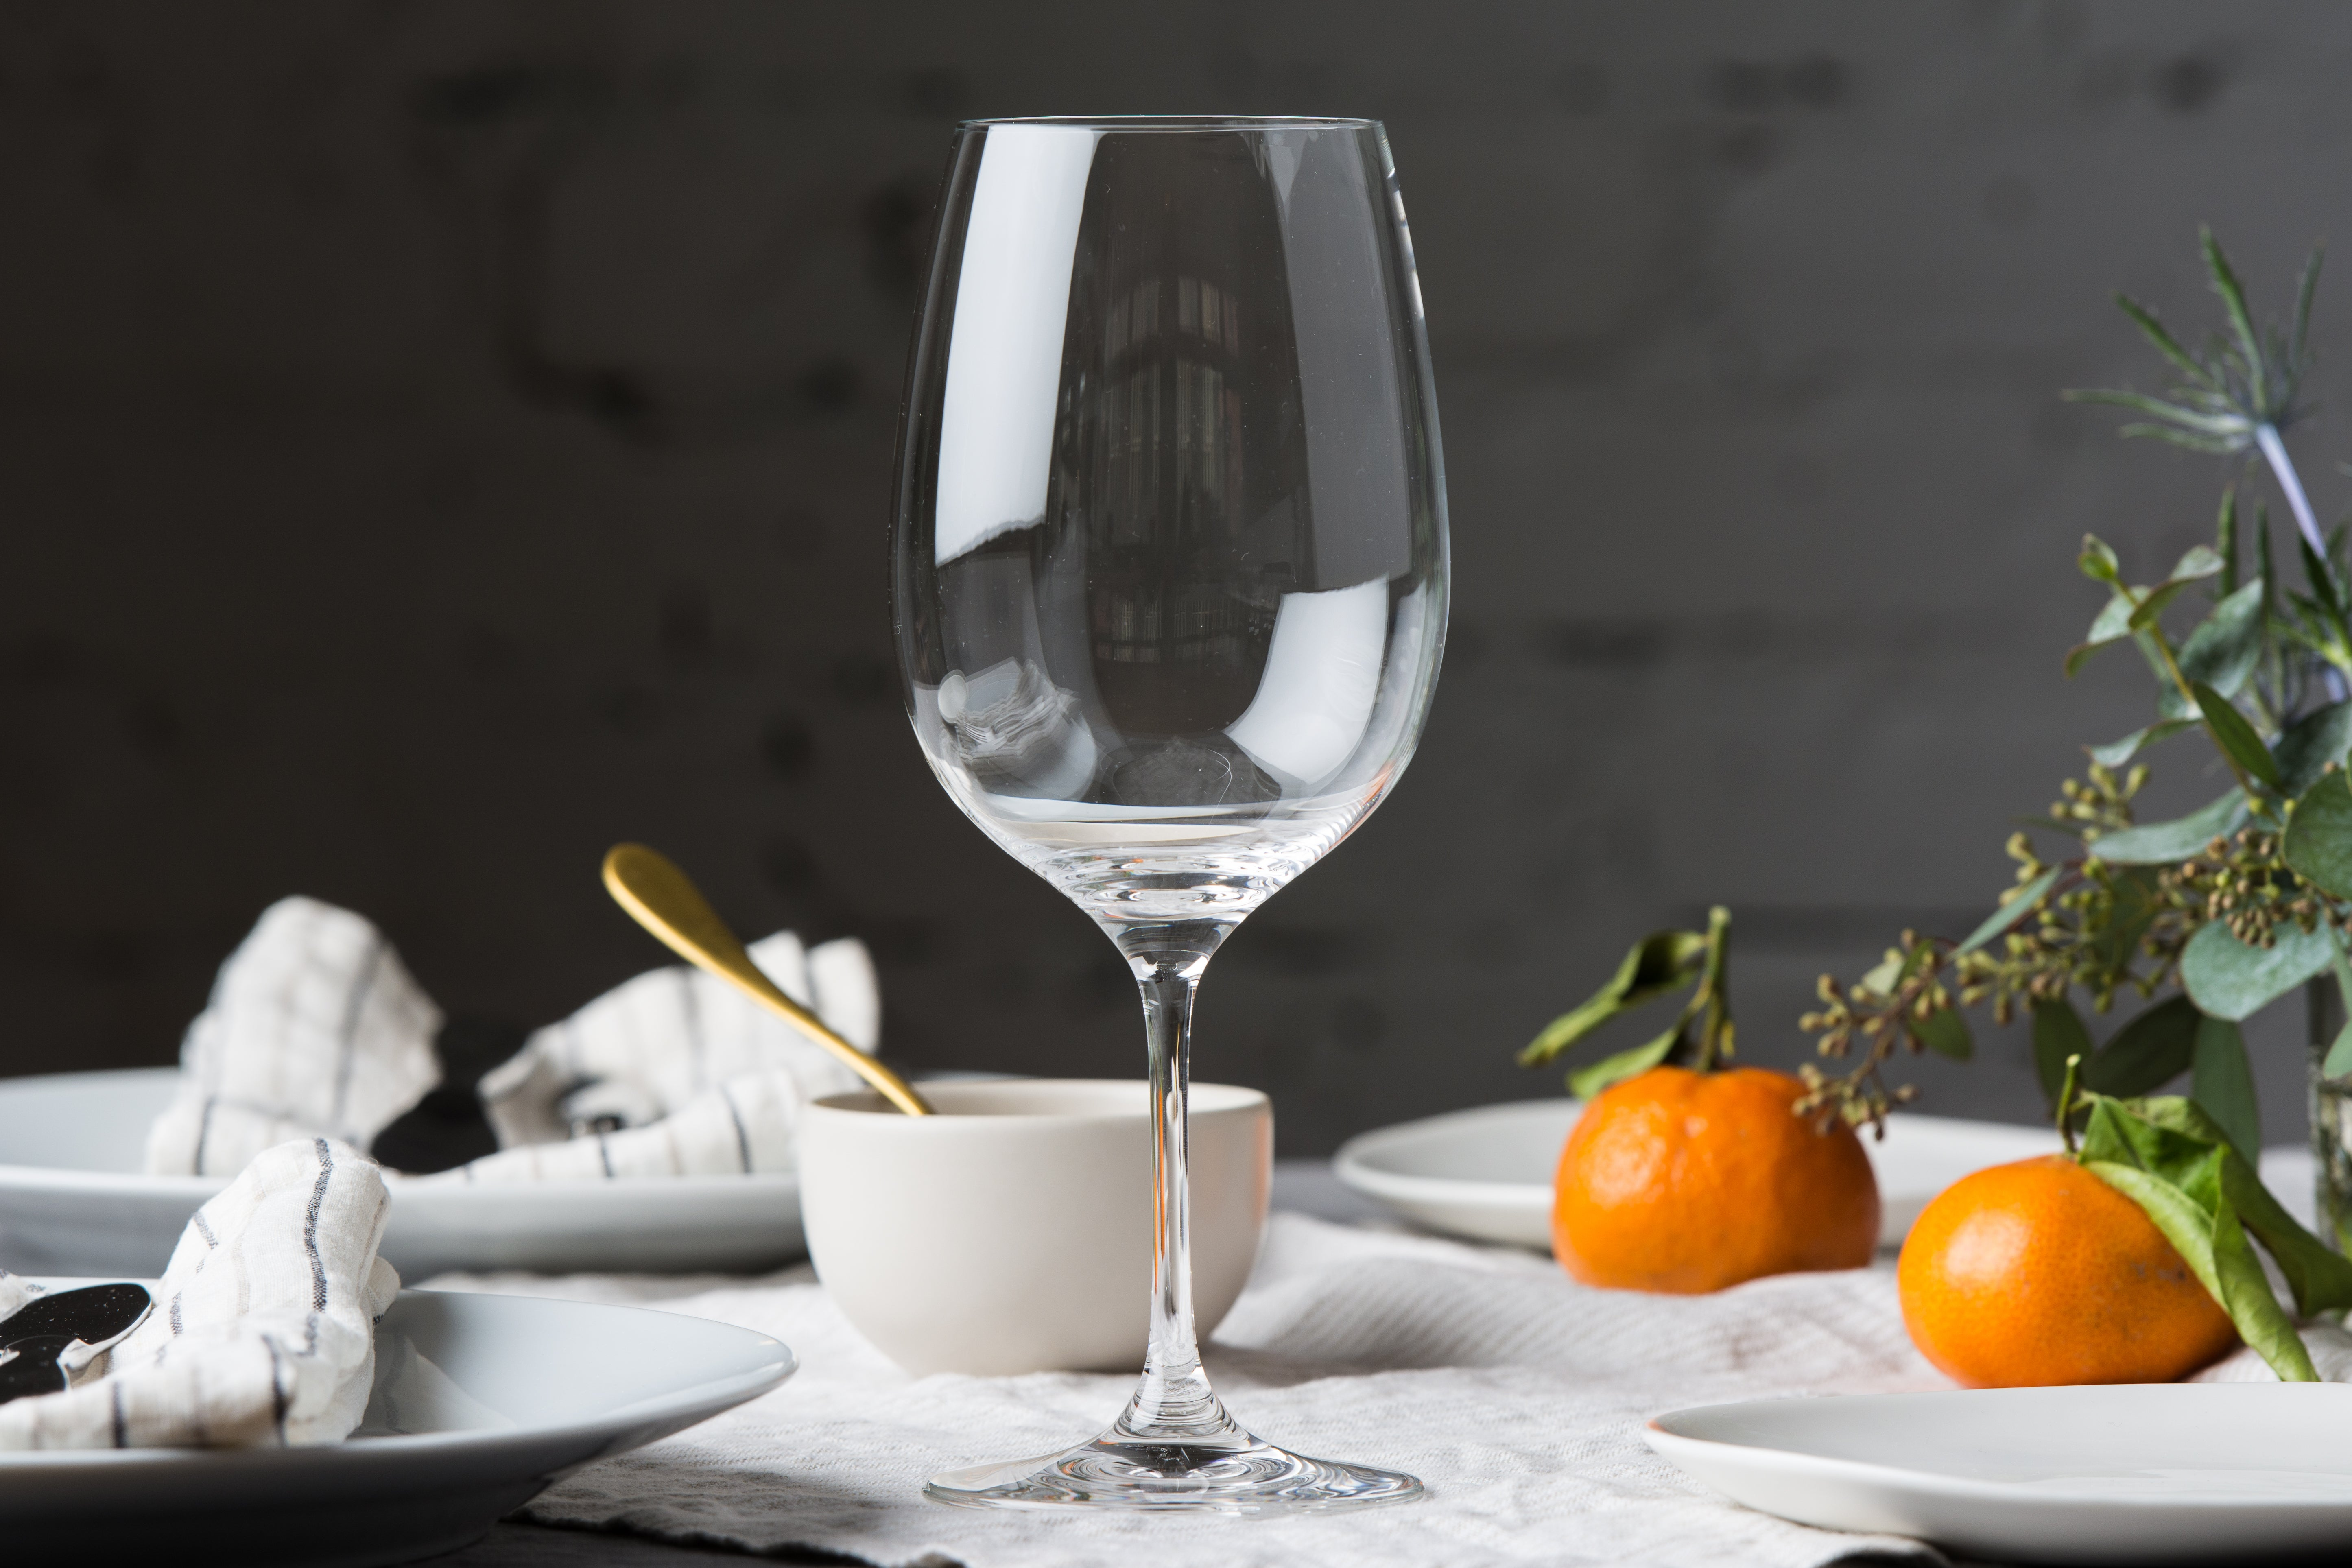 The Riedel Vinum Zinfandel/Riesling Grand Cru wine glass on a dinner table